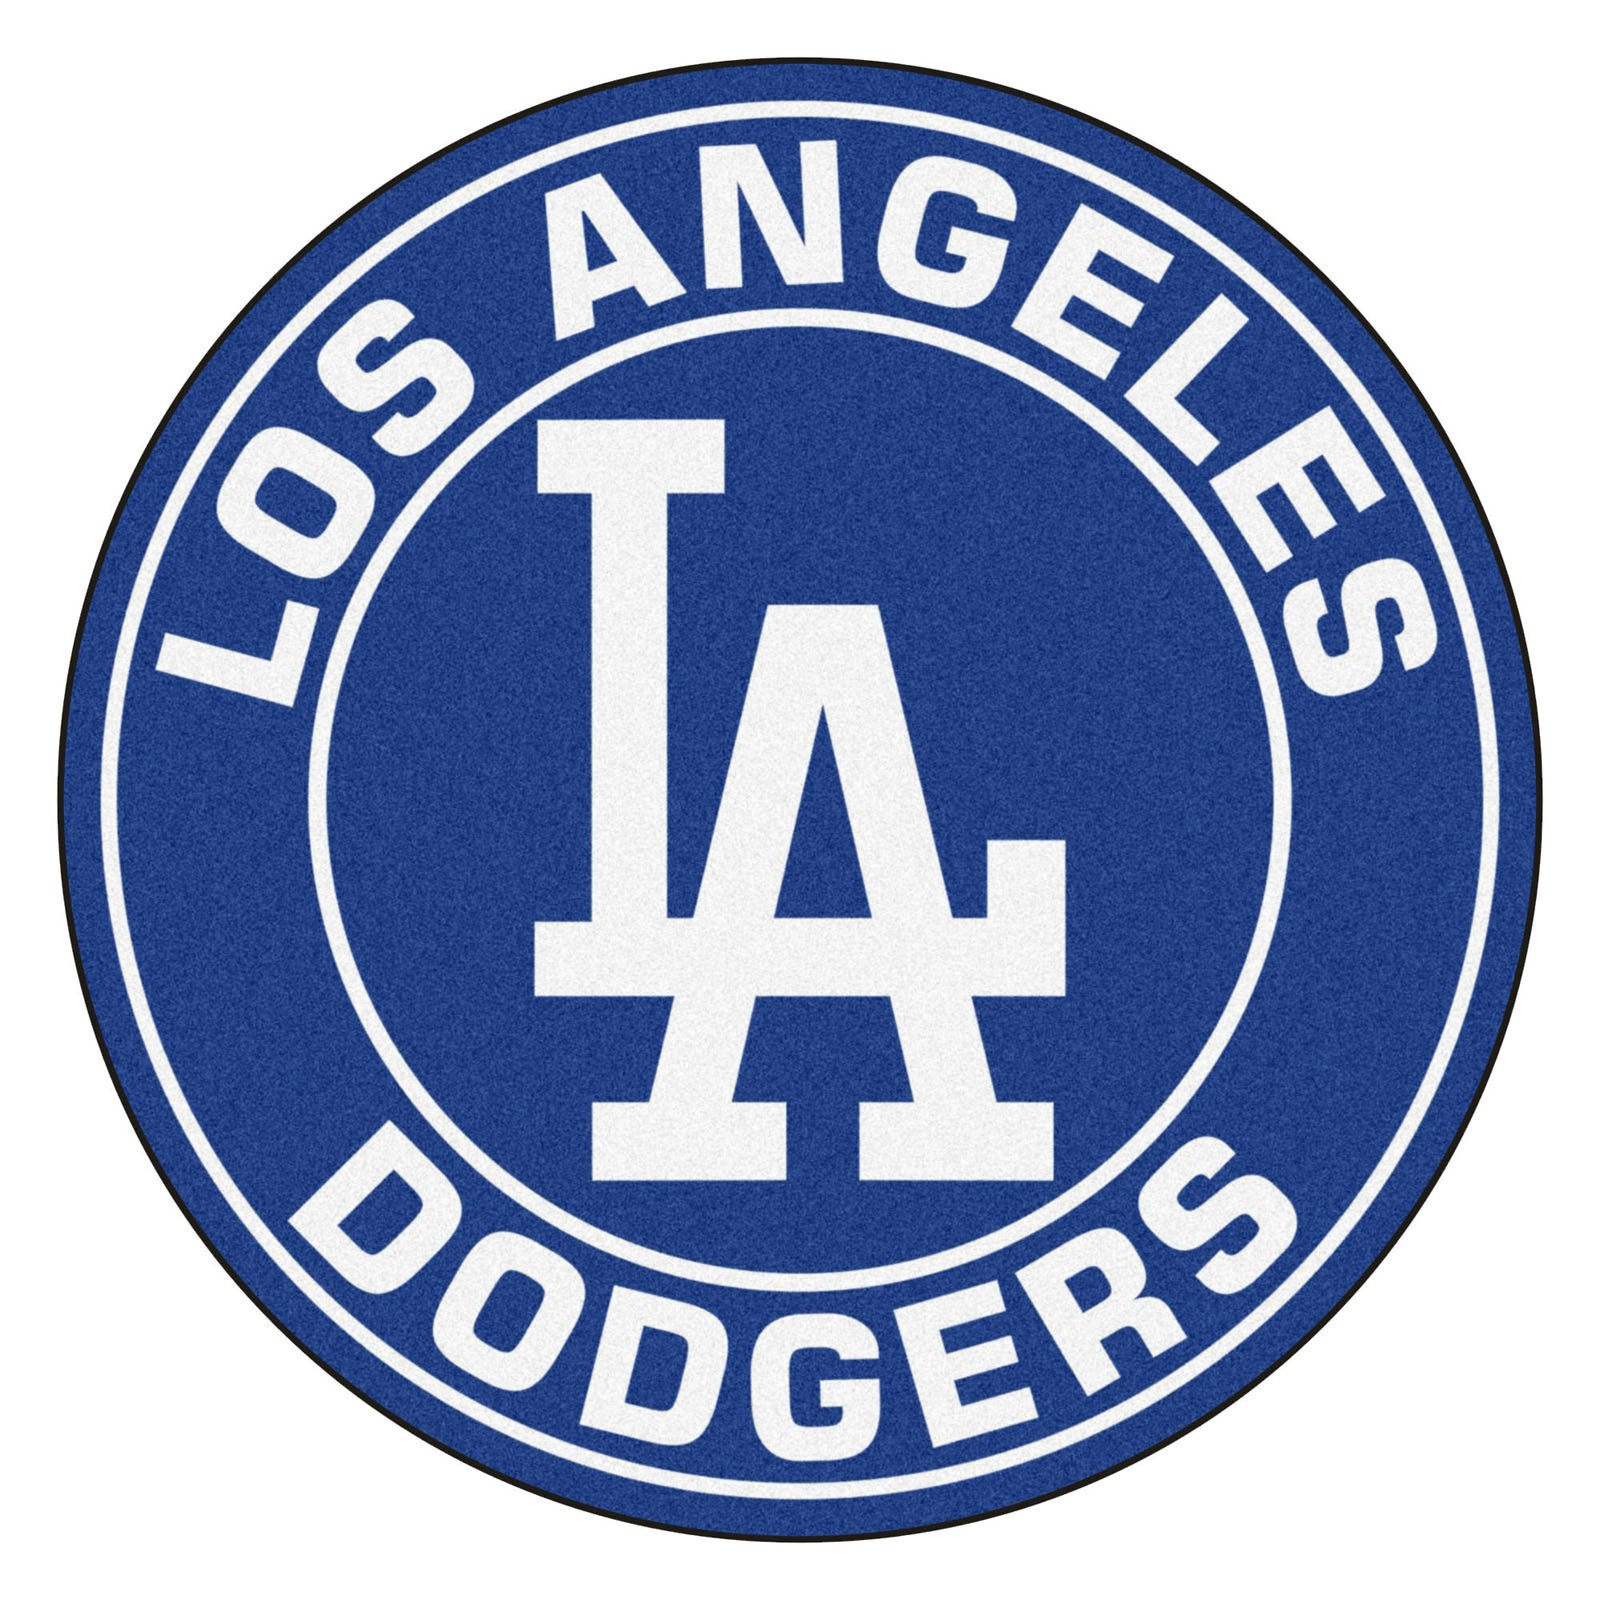 Los Angeles Dodgers logo and symbol, meaning, history, PNG